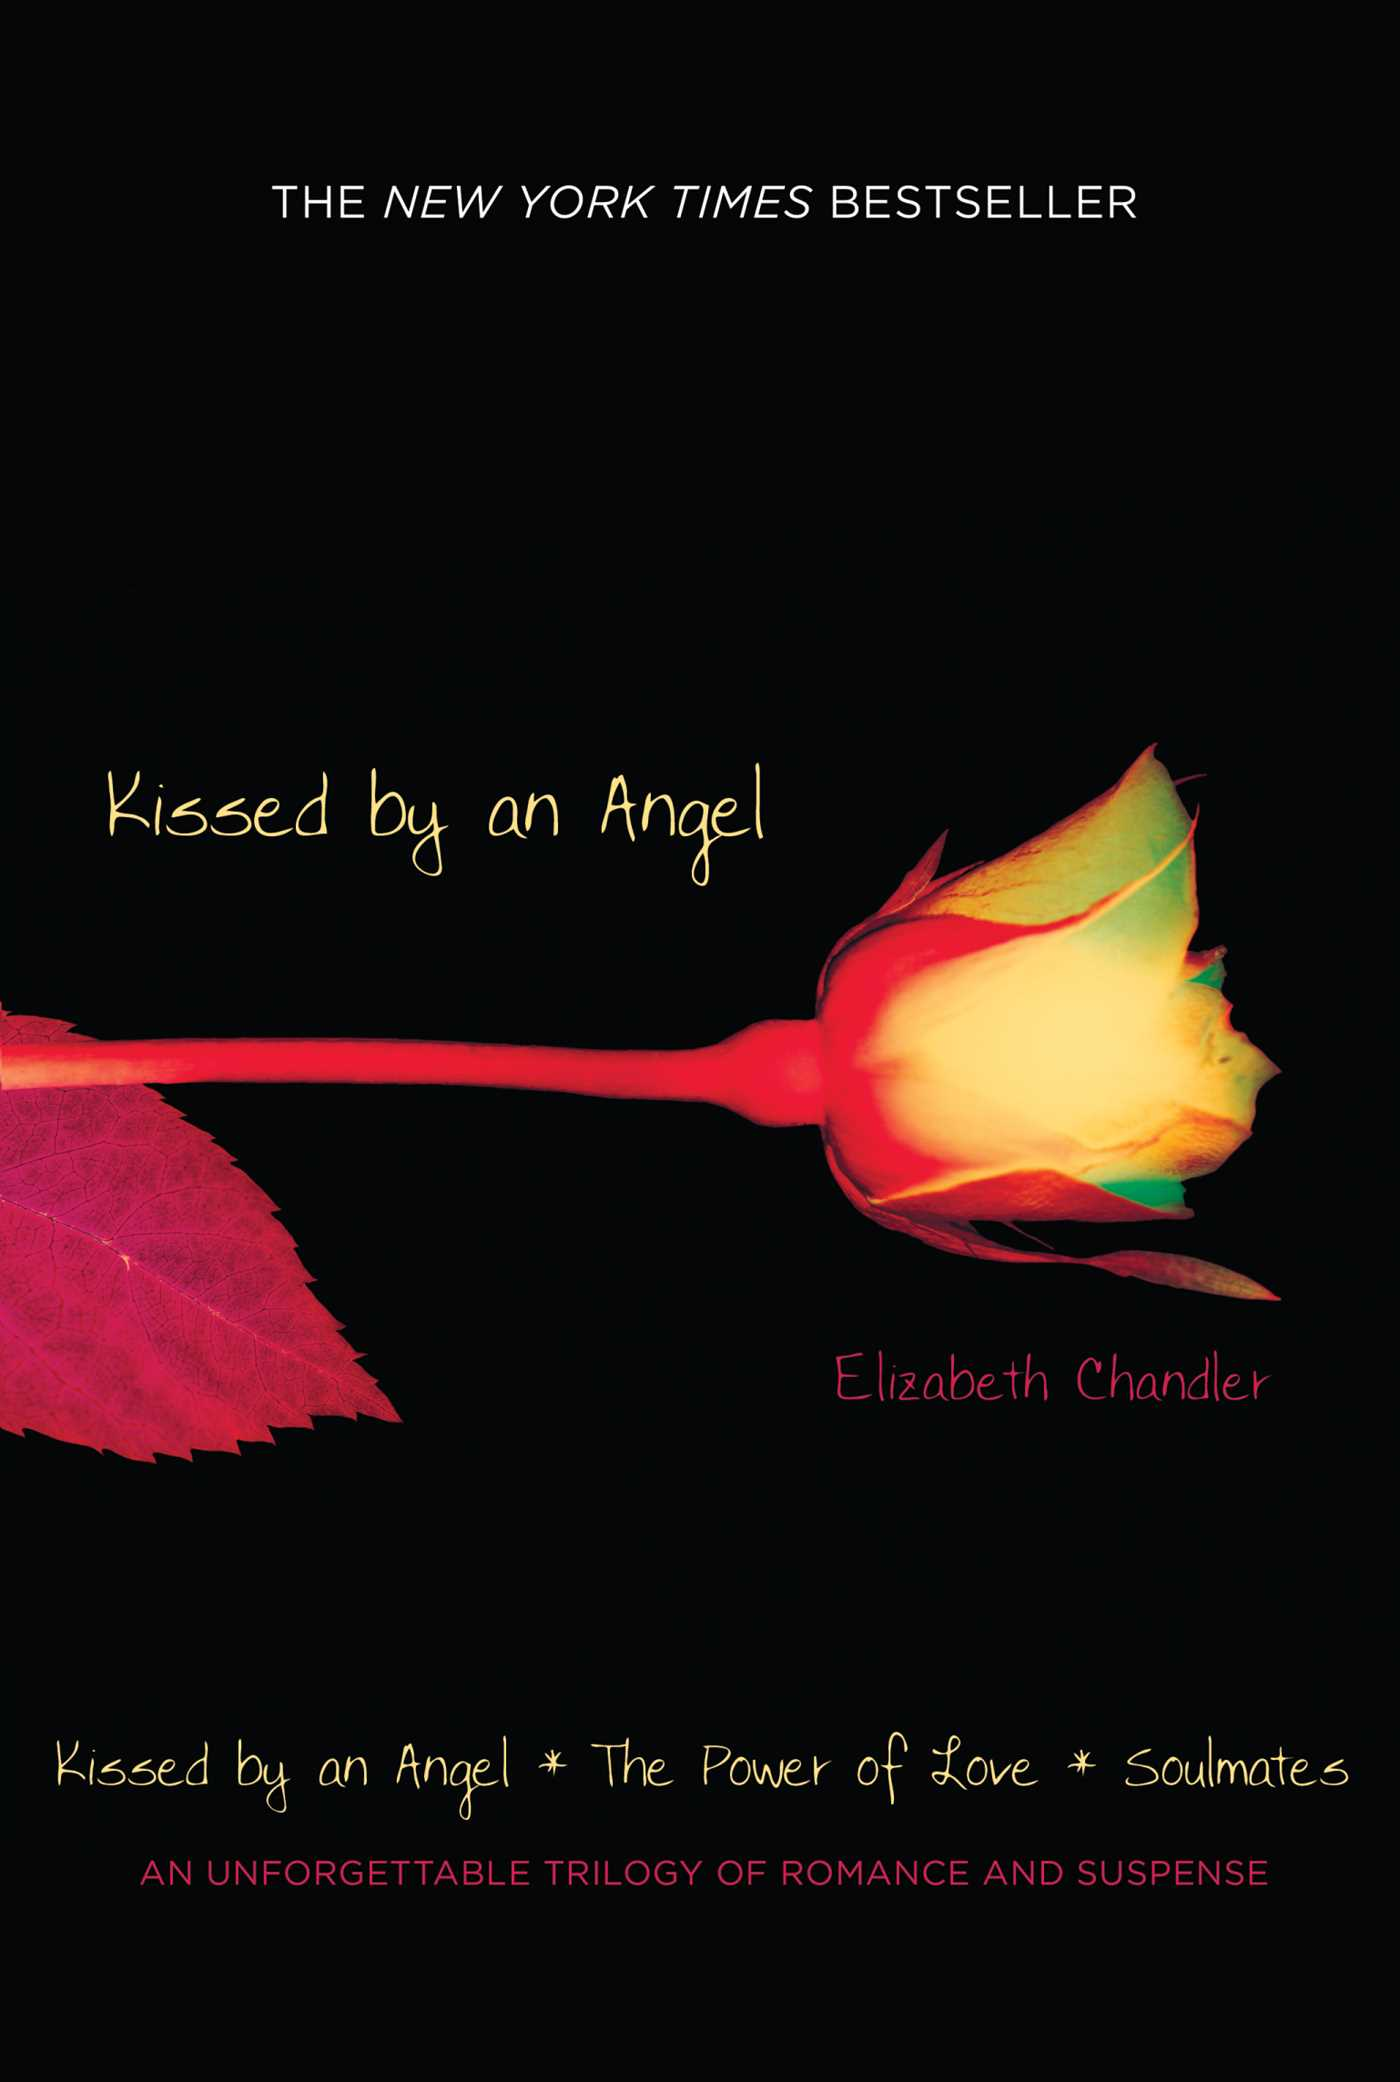 Kissed-by-an-angel-book-1-9781442428645_hr